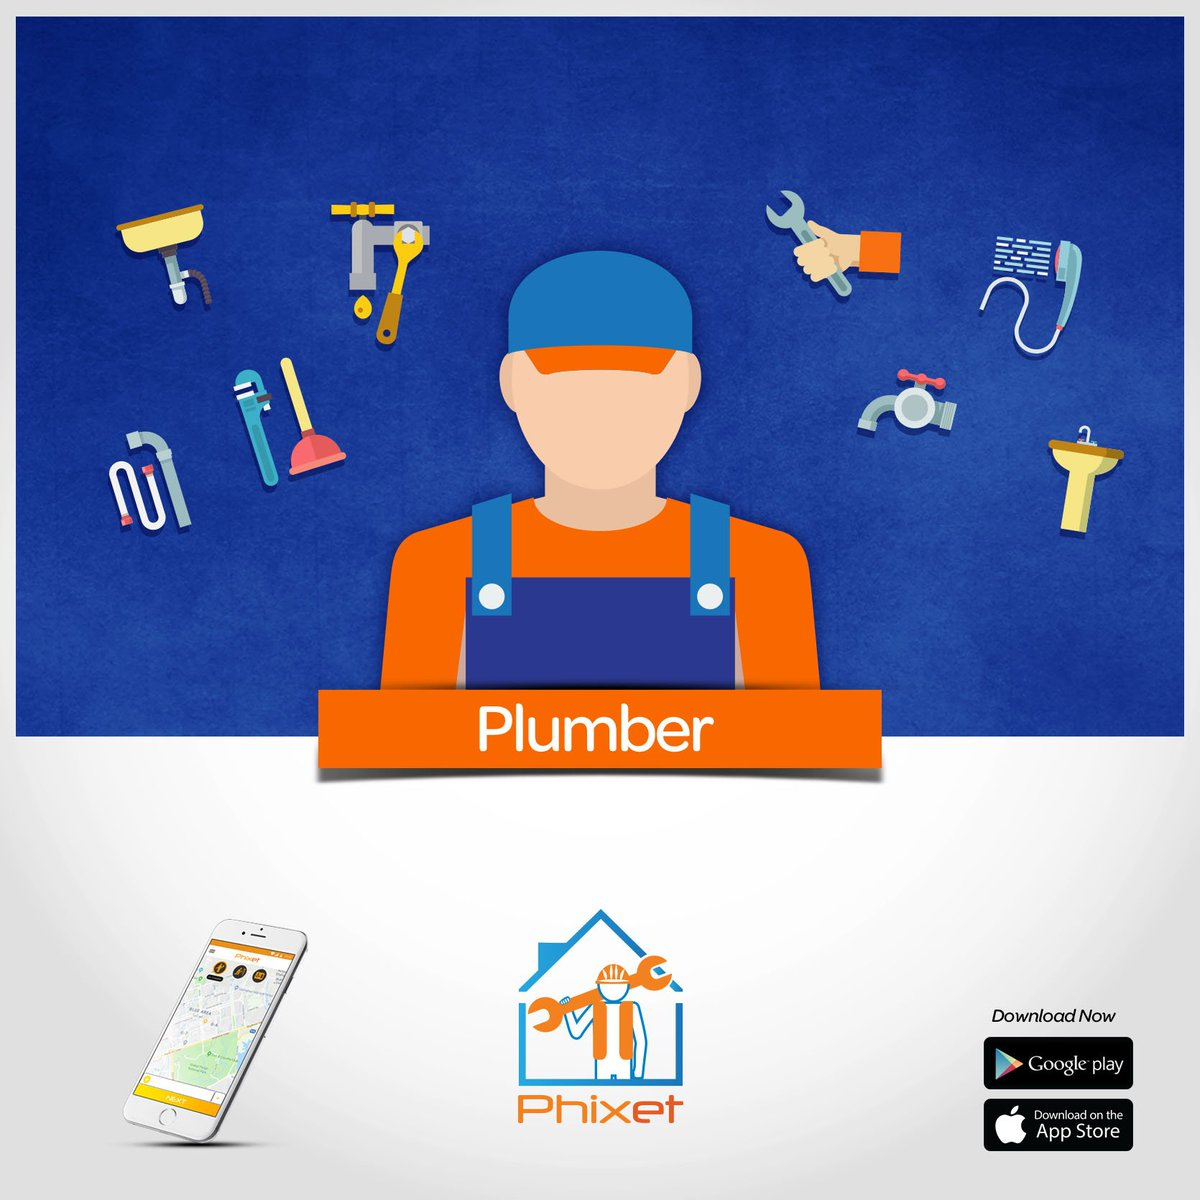 Phixet On Twitter Download Phixet App Now And Get A Plumber At Your Doorstep With Just A Few Taps Plumber Electrician Ac Technician Much More Download Phixet App Now Android Https T Co Zbqxwtswiv